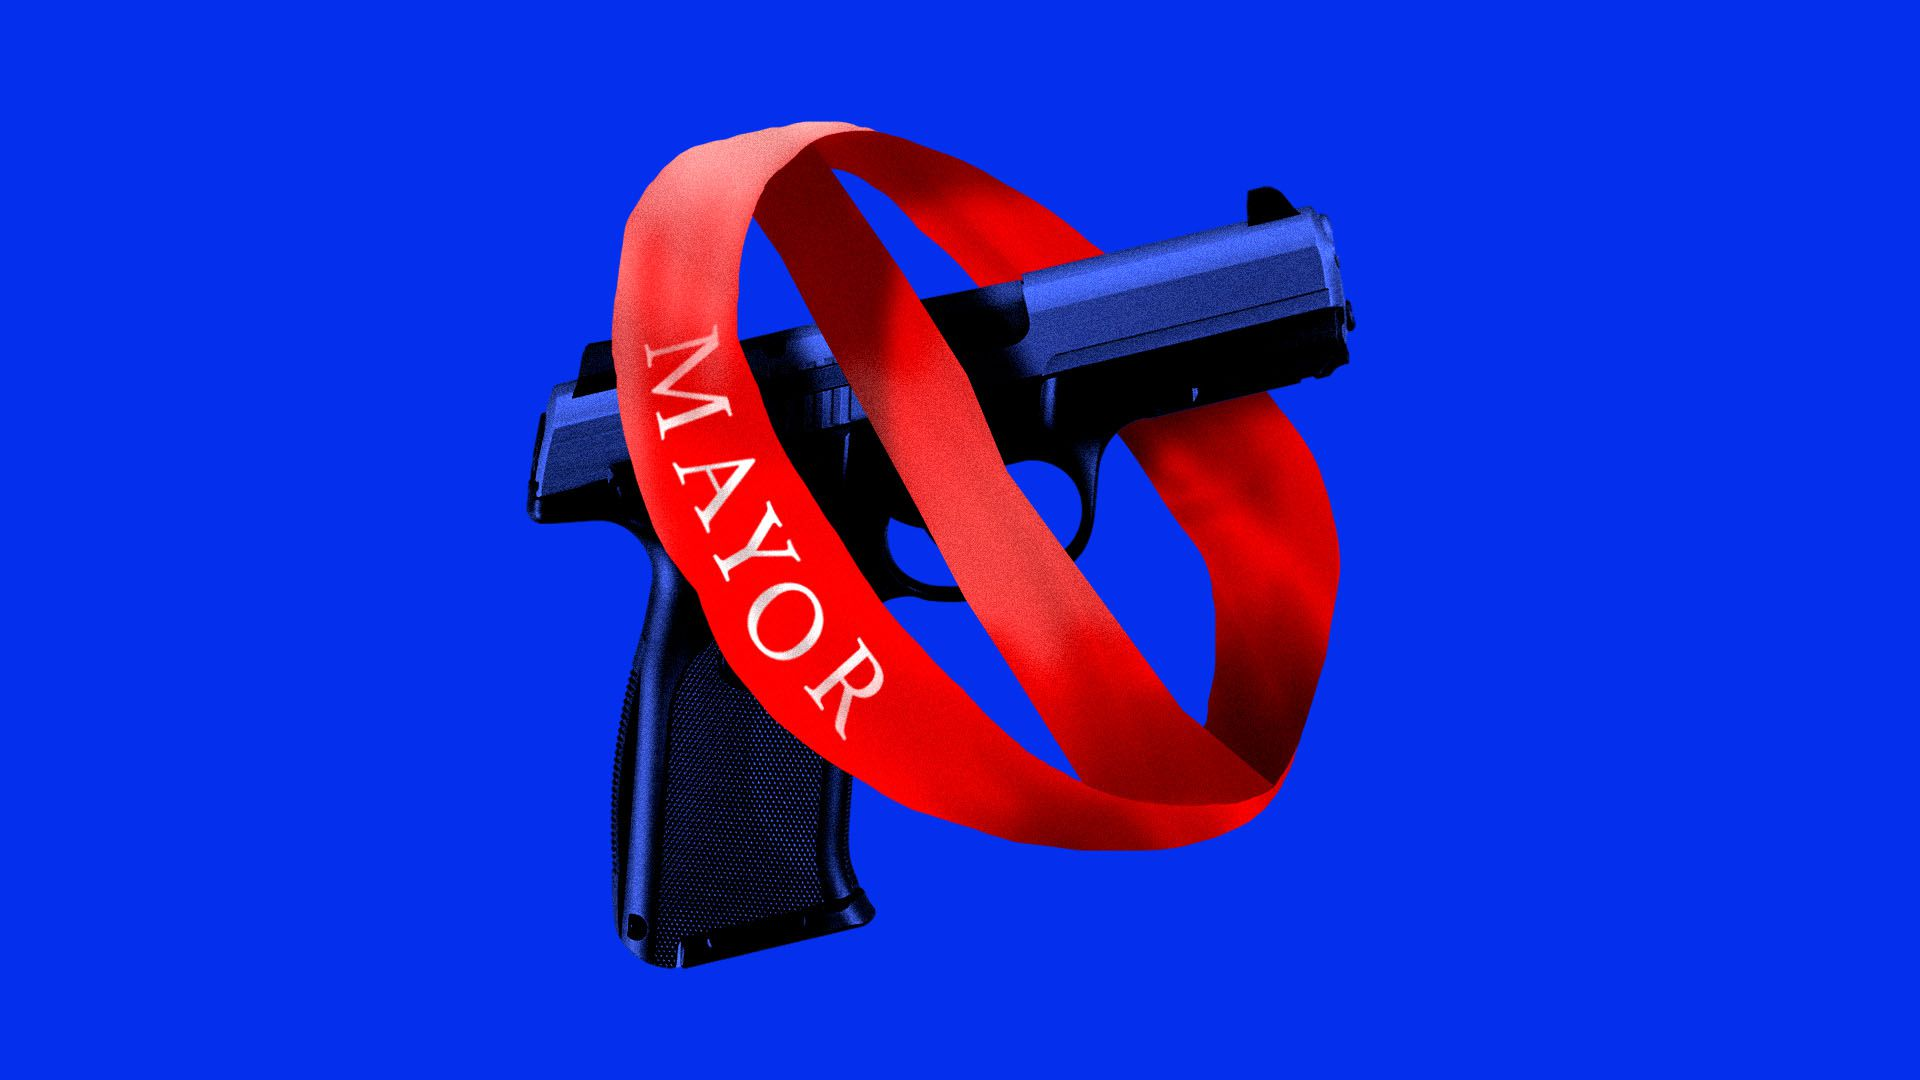 Illustration of a mayor's sash in the shape of a prohibition sign around a handgun